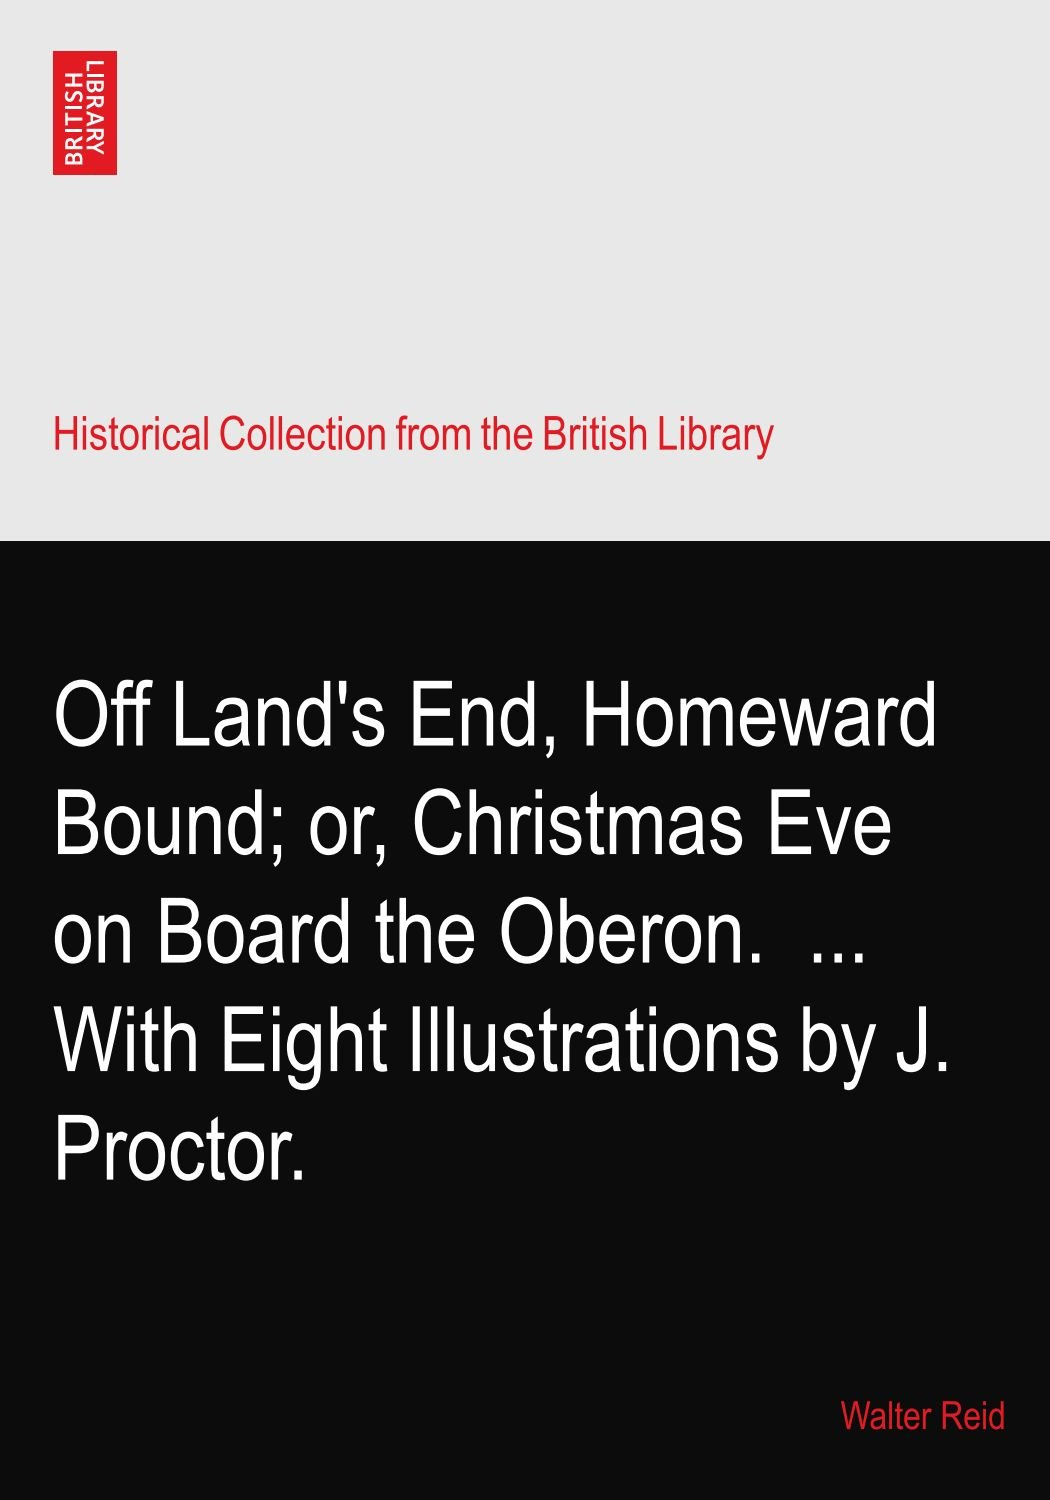 Off Land's End, Homeward Bound; or, Christmas Eve on Board the Oberon.? ... With Eight Illustrations by J. Proctor. ebook